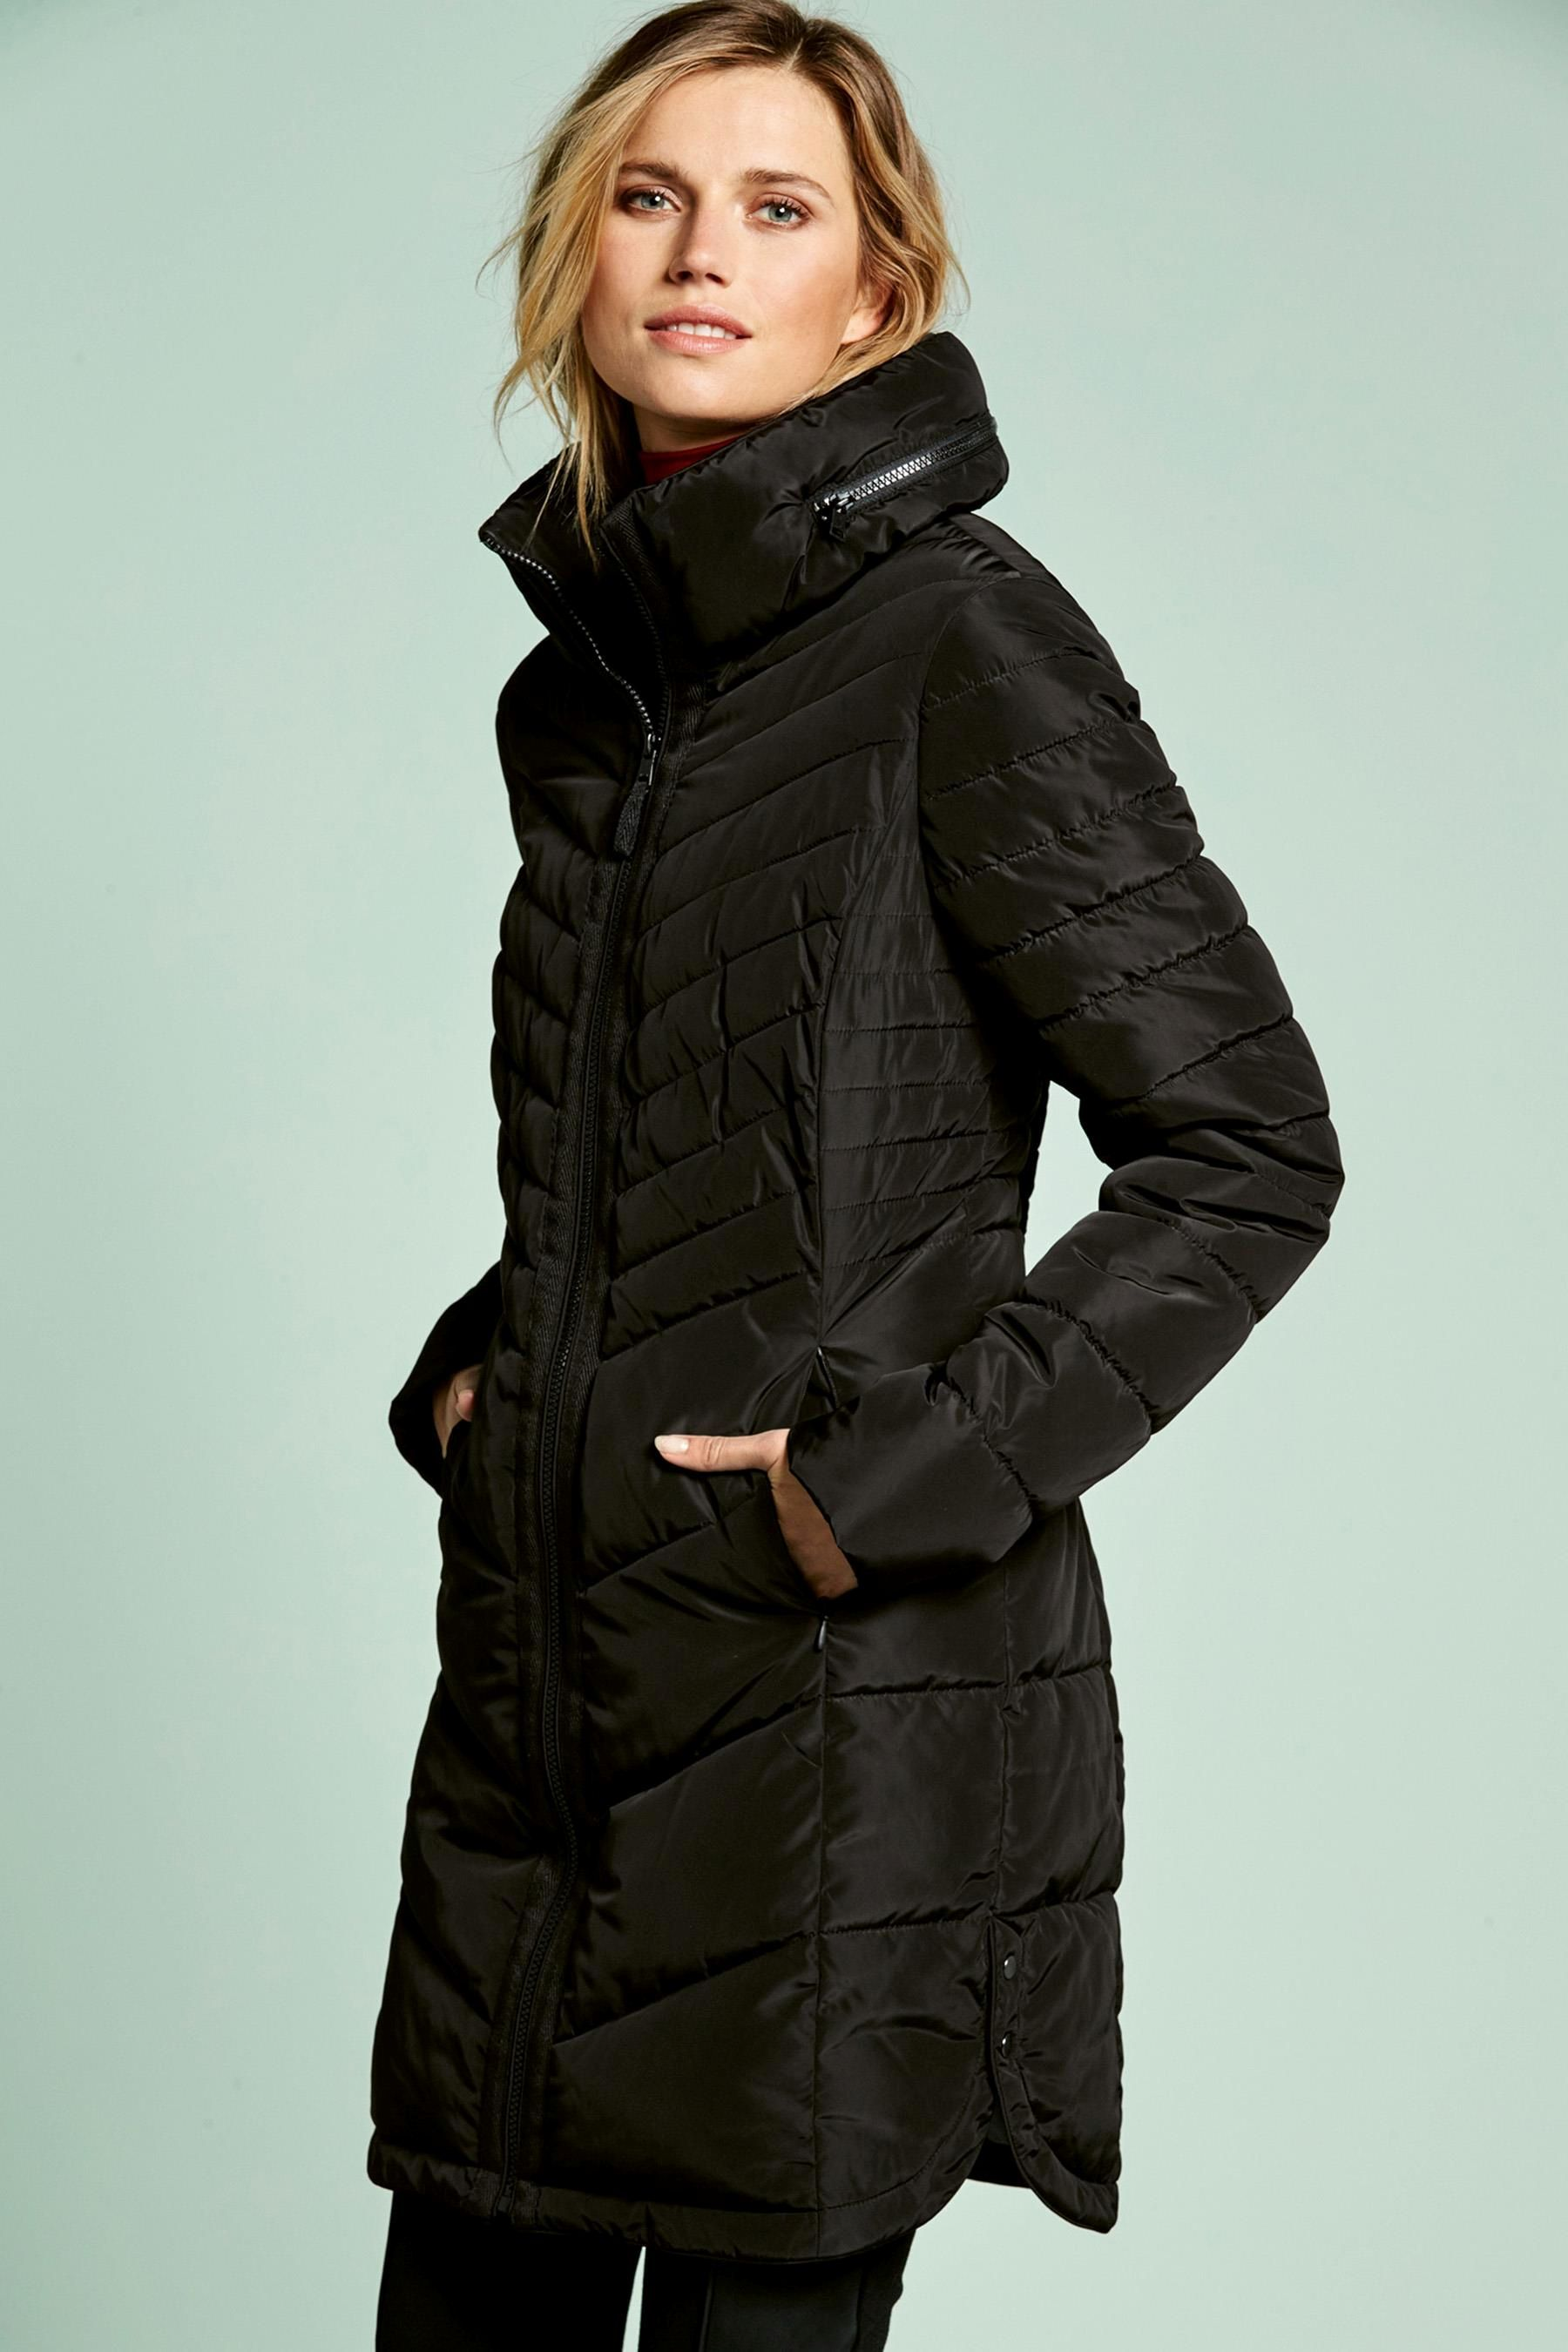 838c8a293d547 Buy Black Padded Jacket from the Next UK online shop | My Style ...